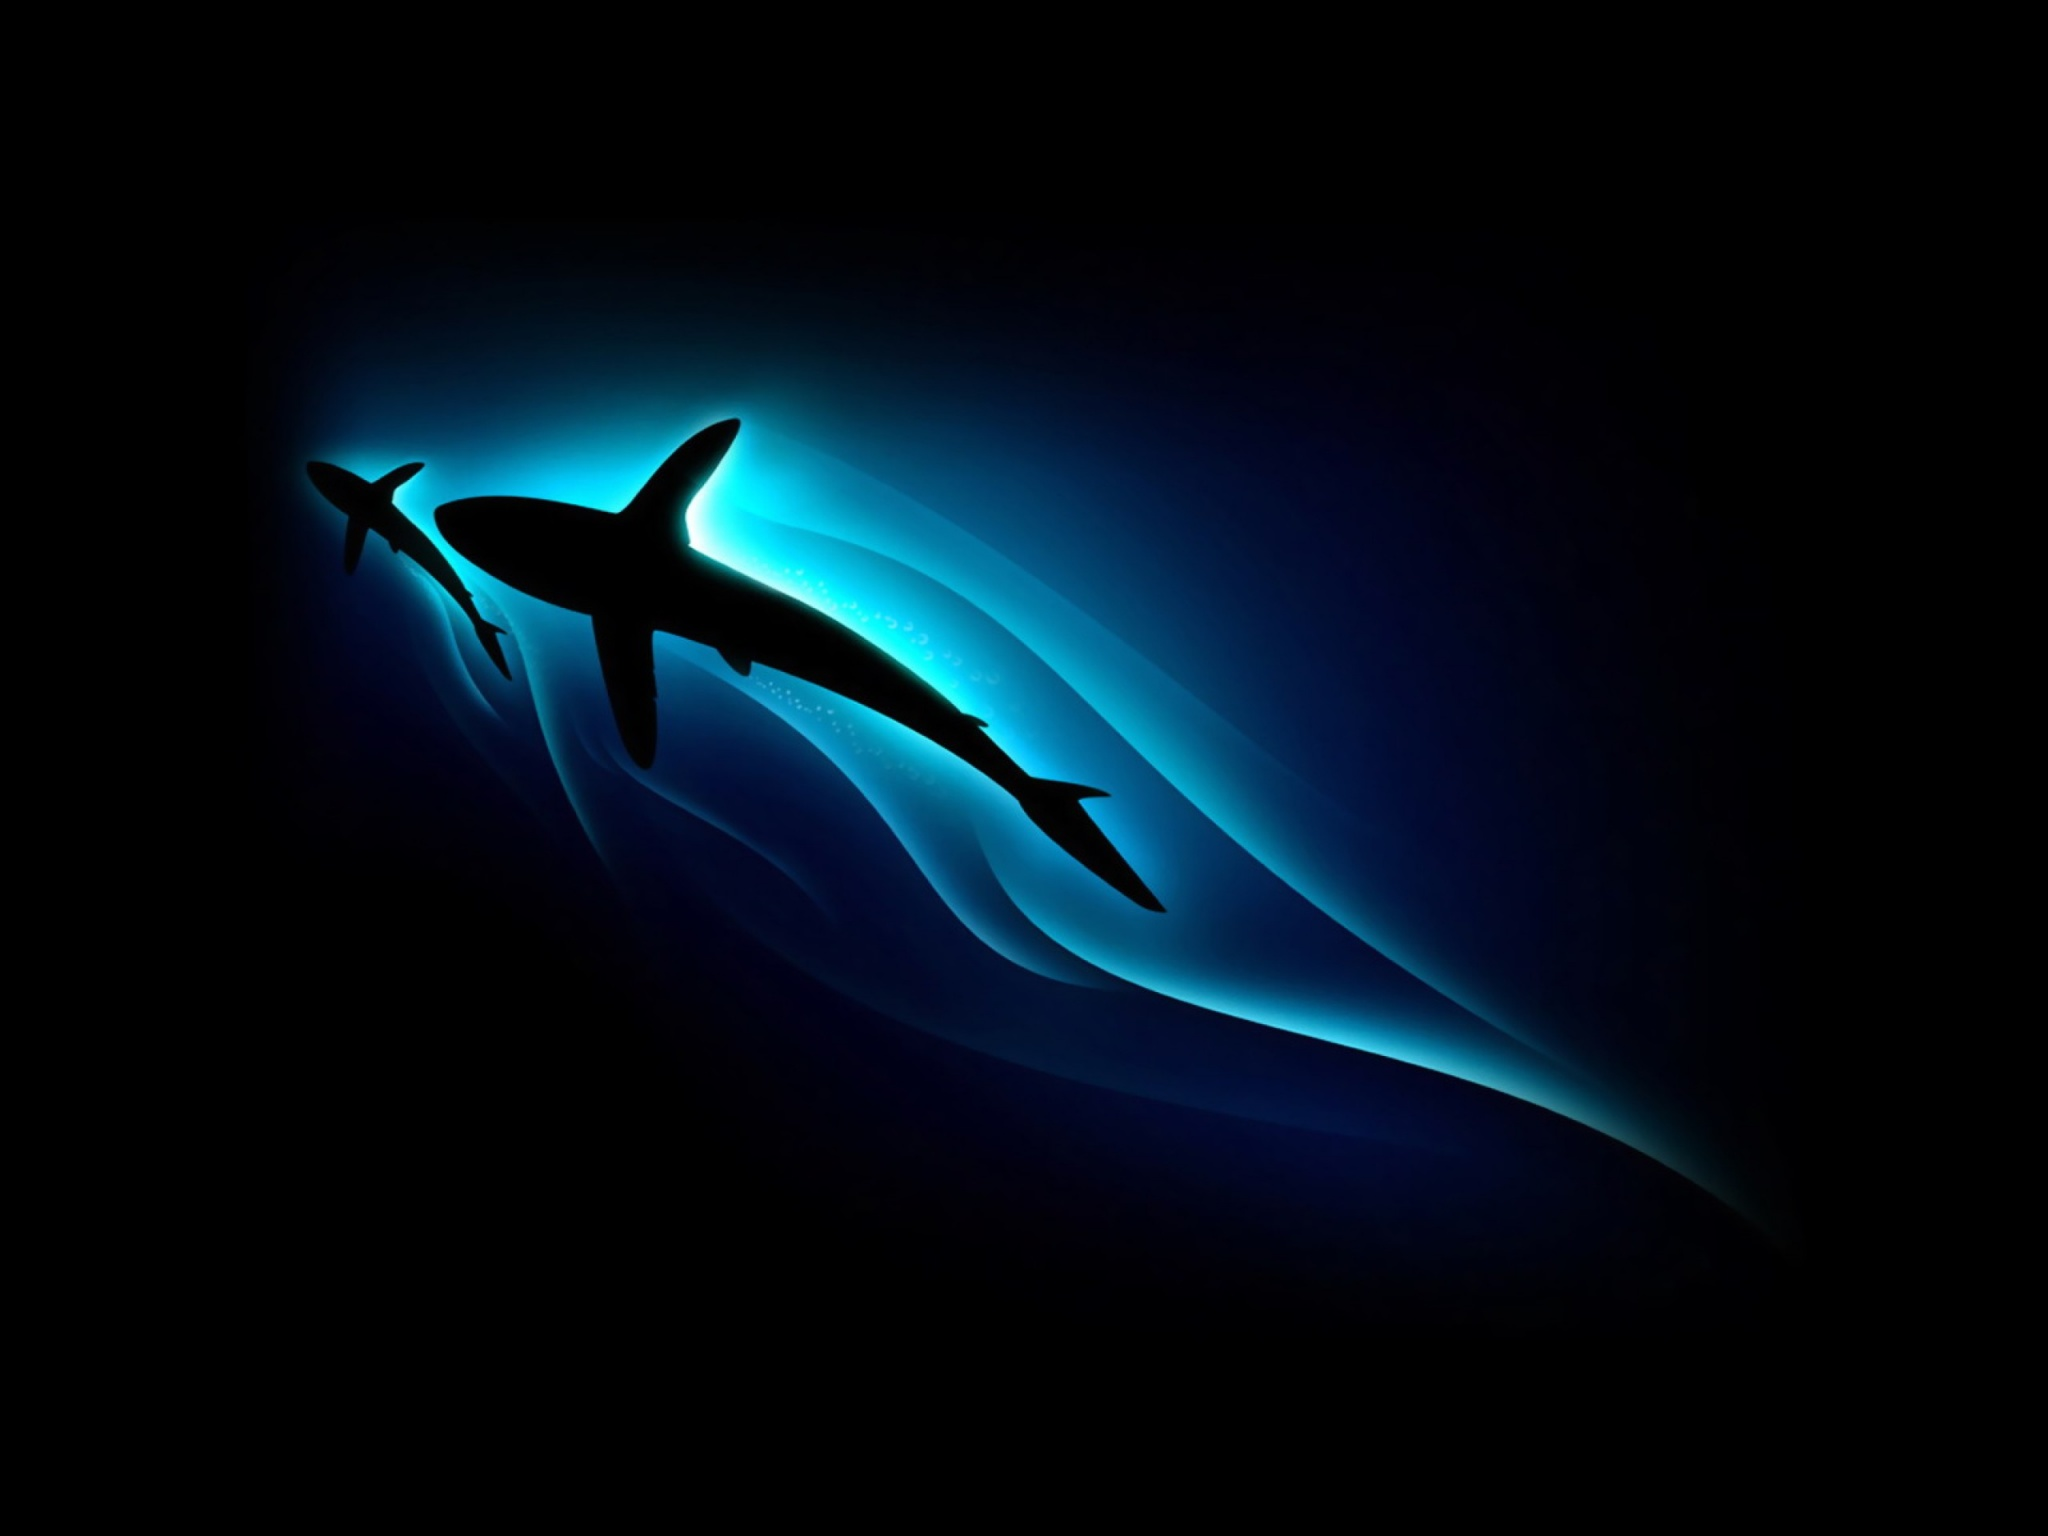 Wallpaper Full Hd Abstract Shark Abstract Wallpapers 2048x1536 173669